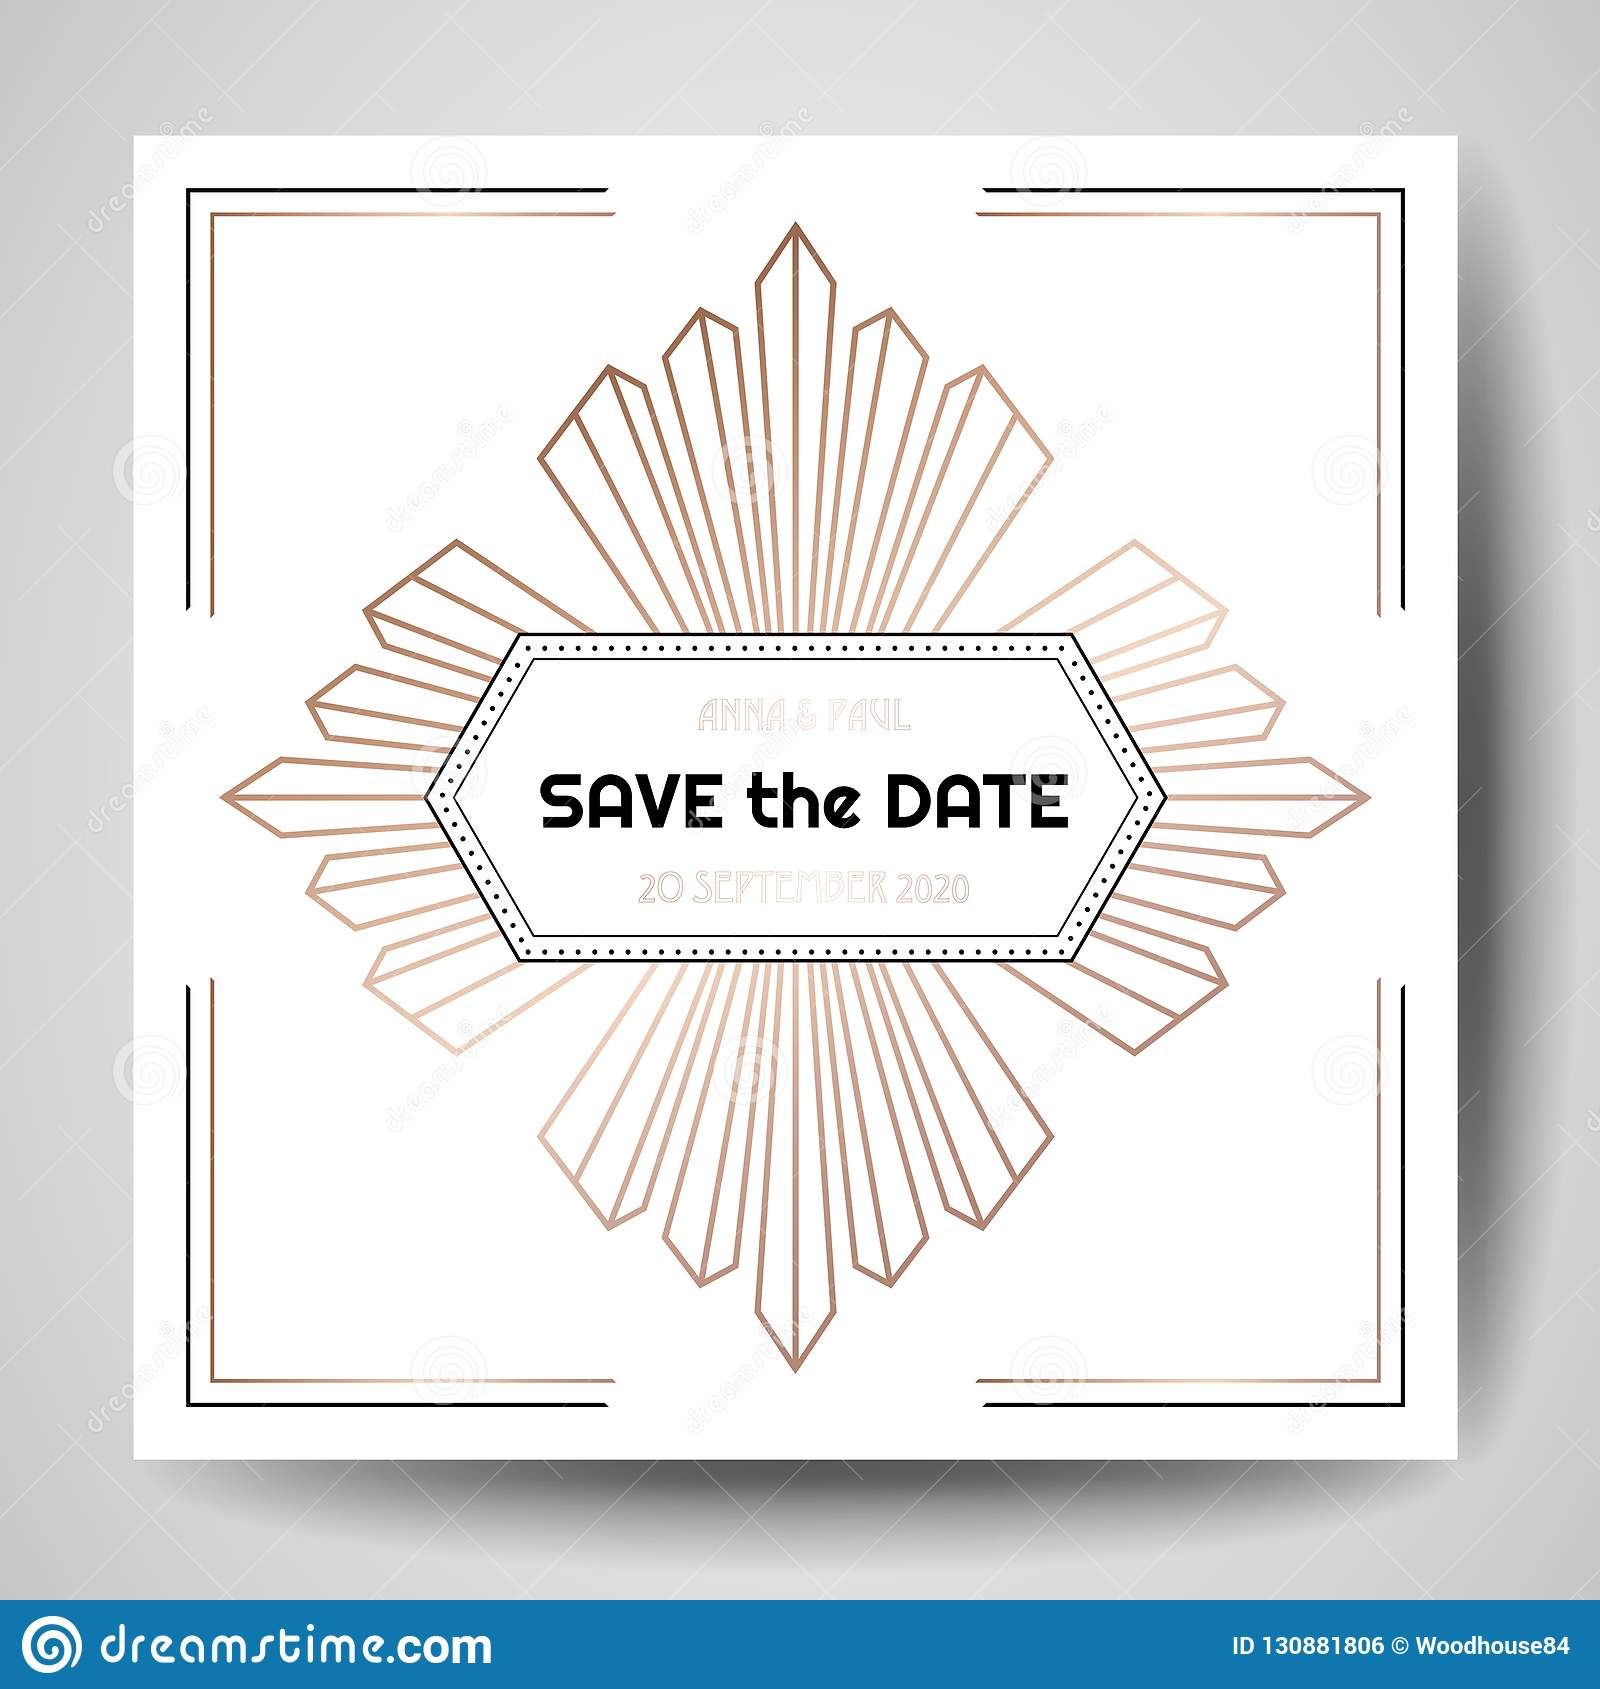 Art Deco Wedding Invitation Luxury Save The Date Card With Gold Geometric Frame Vector Trendy Cover Graphic Poster Gatsby 1920 Brochure Design Template: 1920s Wedding Invitation Clip Art At Reisefeber.org